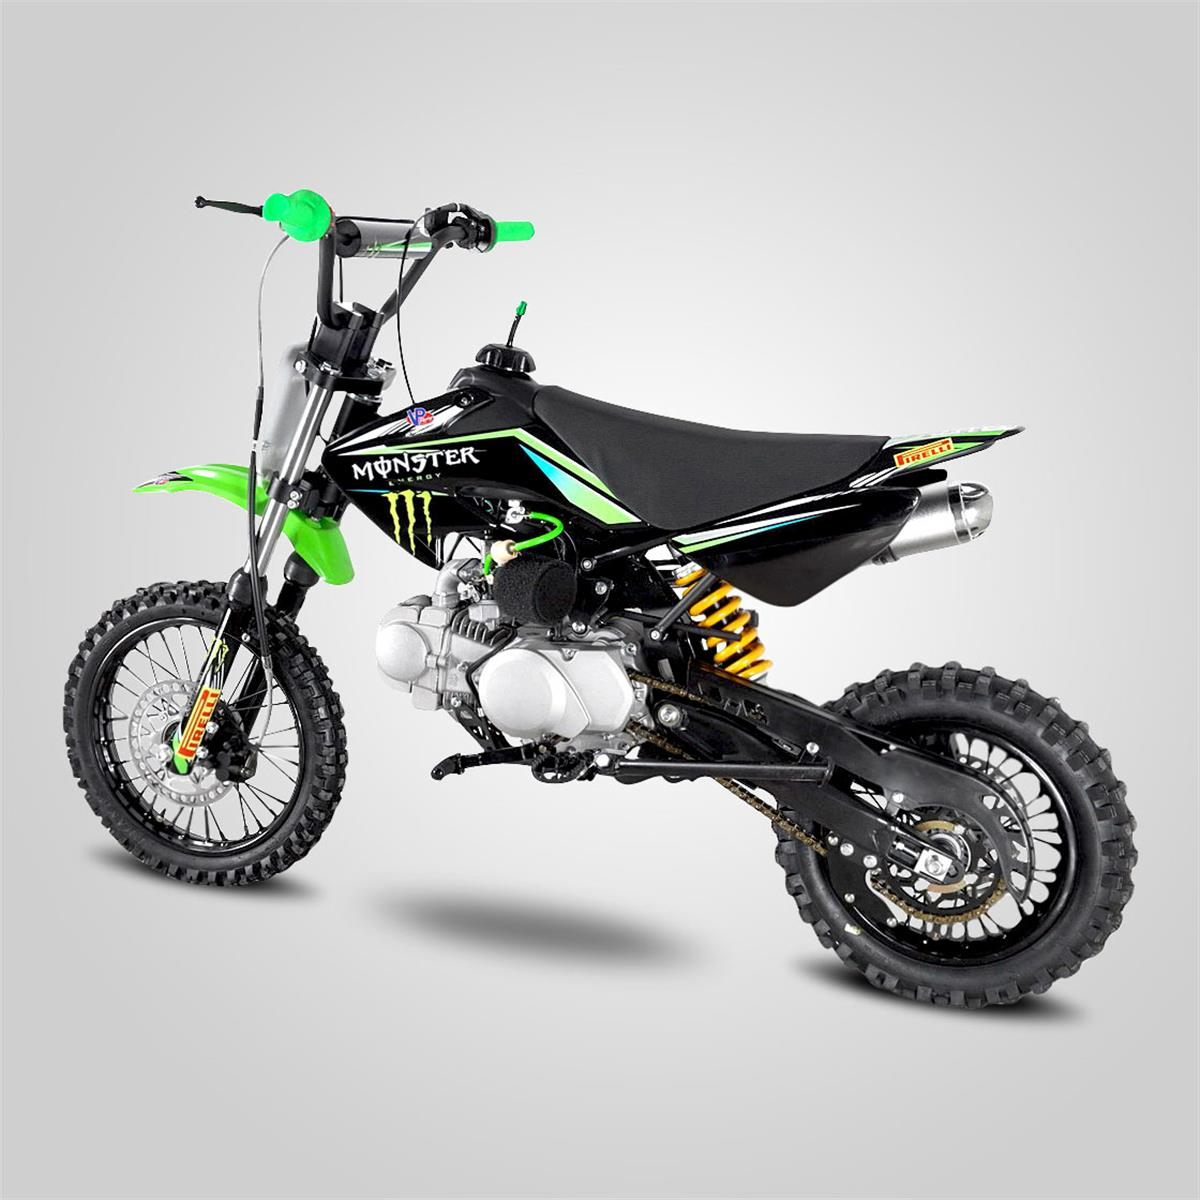 pit bike smx mx 125 monster 125cc smallmx dirt bike. Black Bedroom Furniture Sets. Home Design Ideas